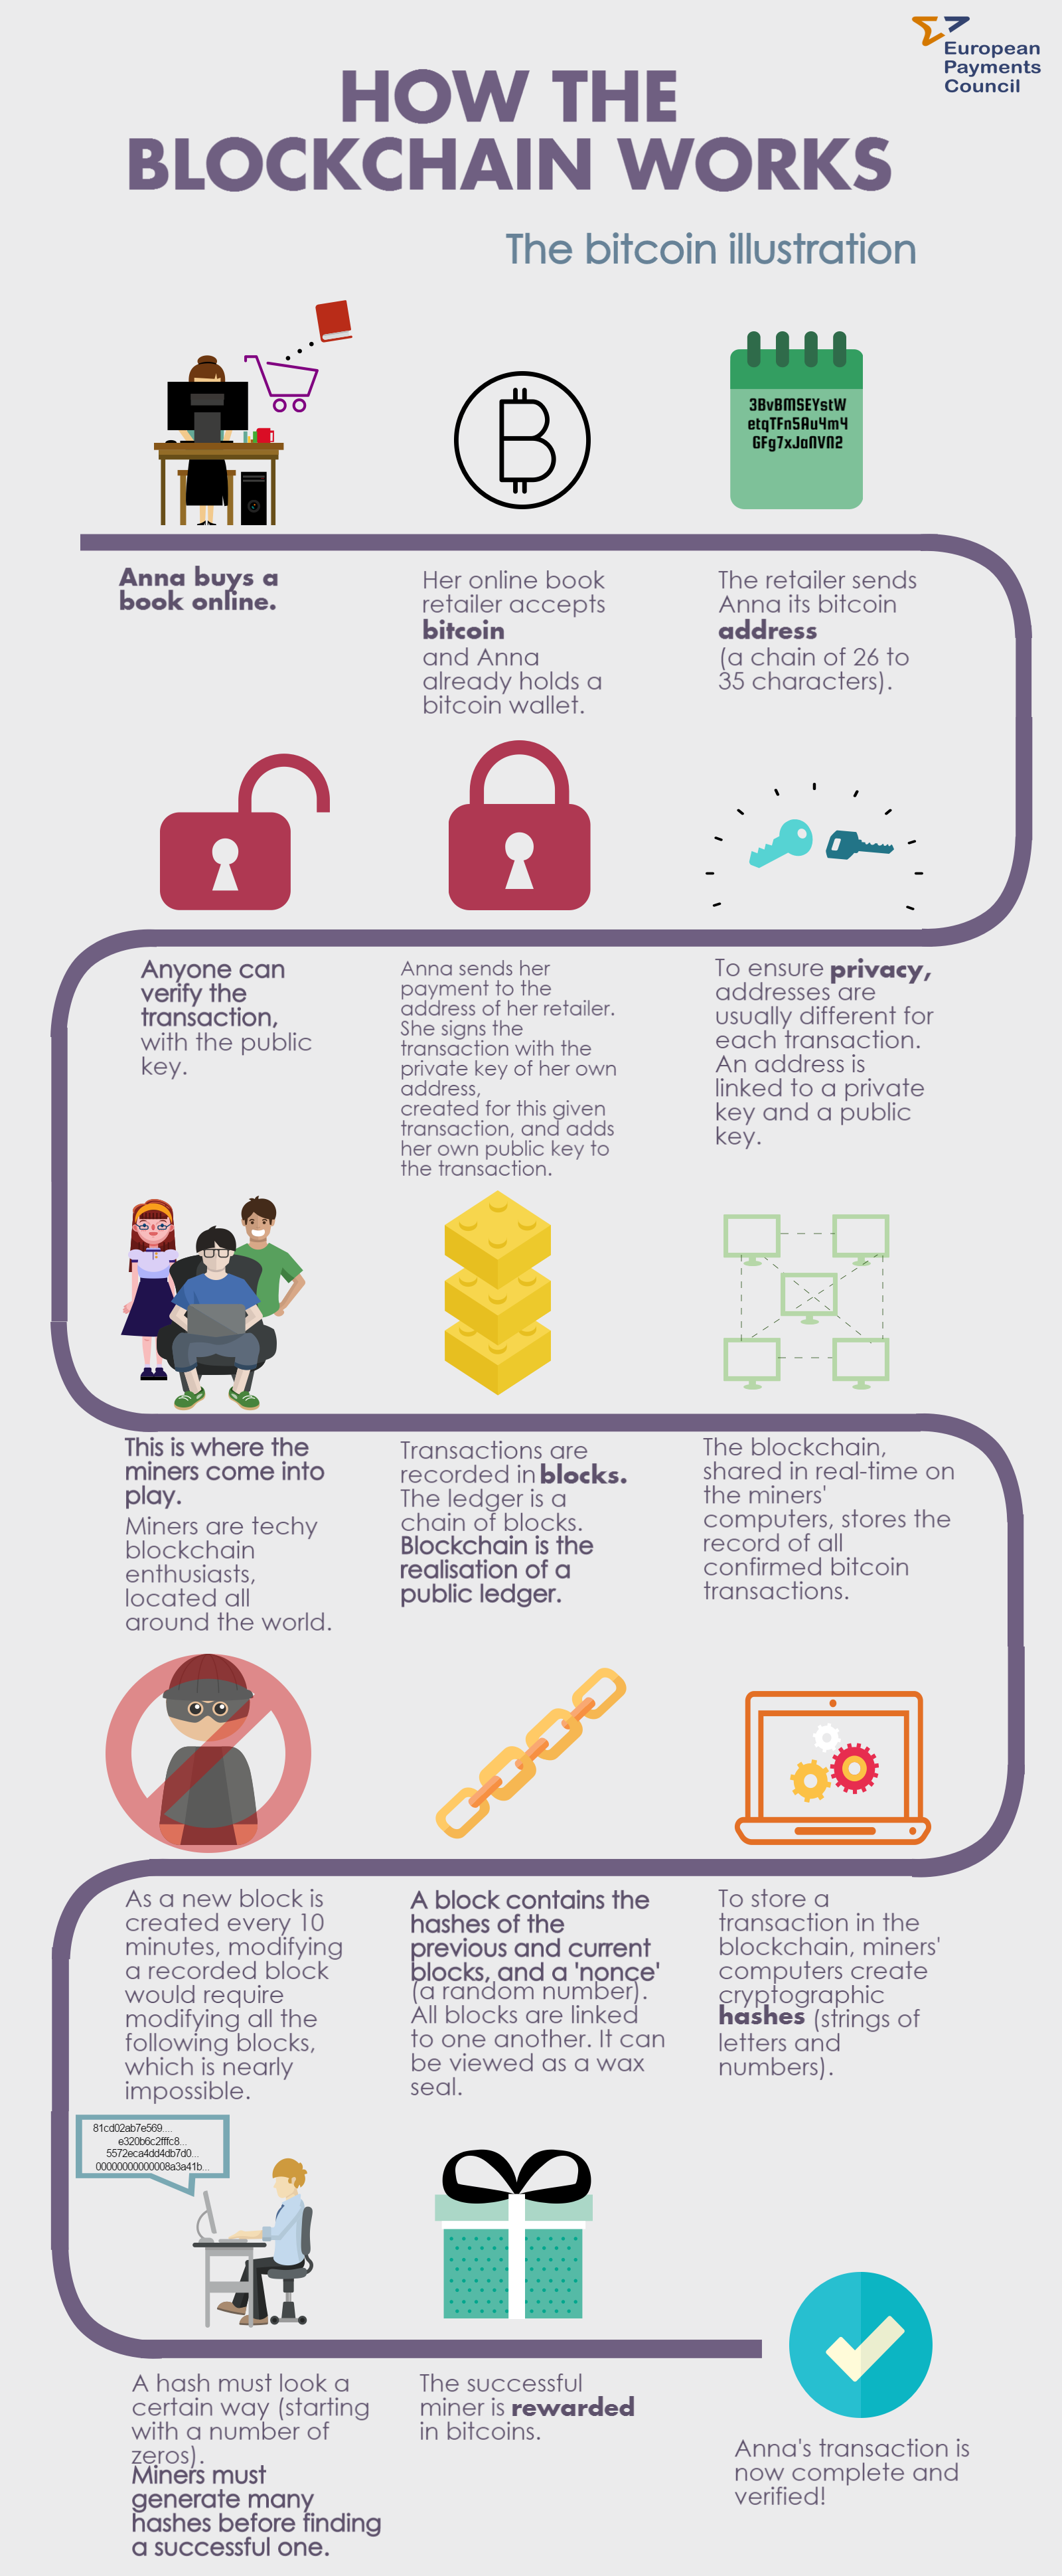 How does cryptocurrency work? Credits: European Payments Council